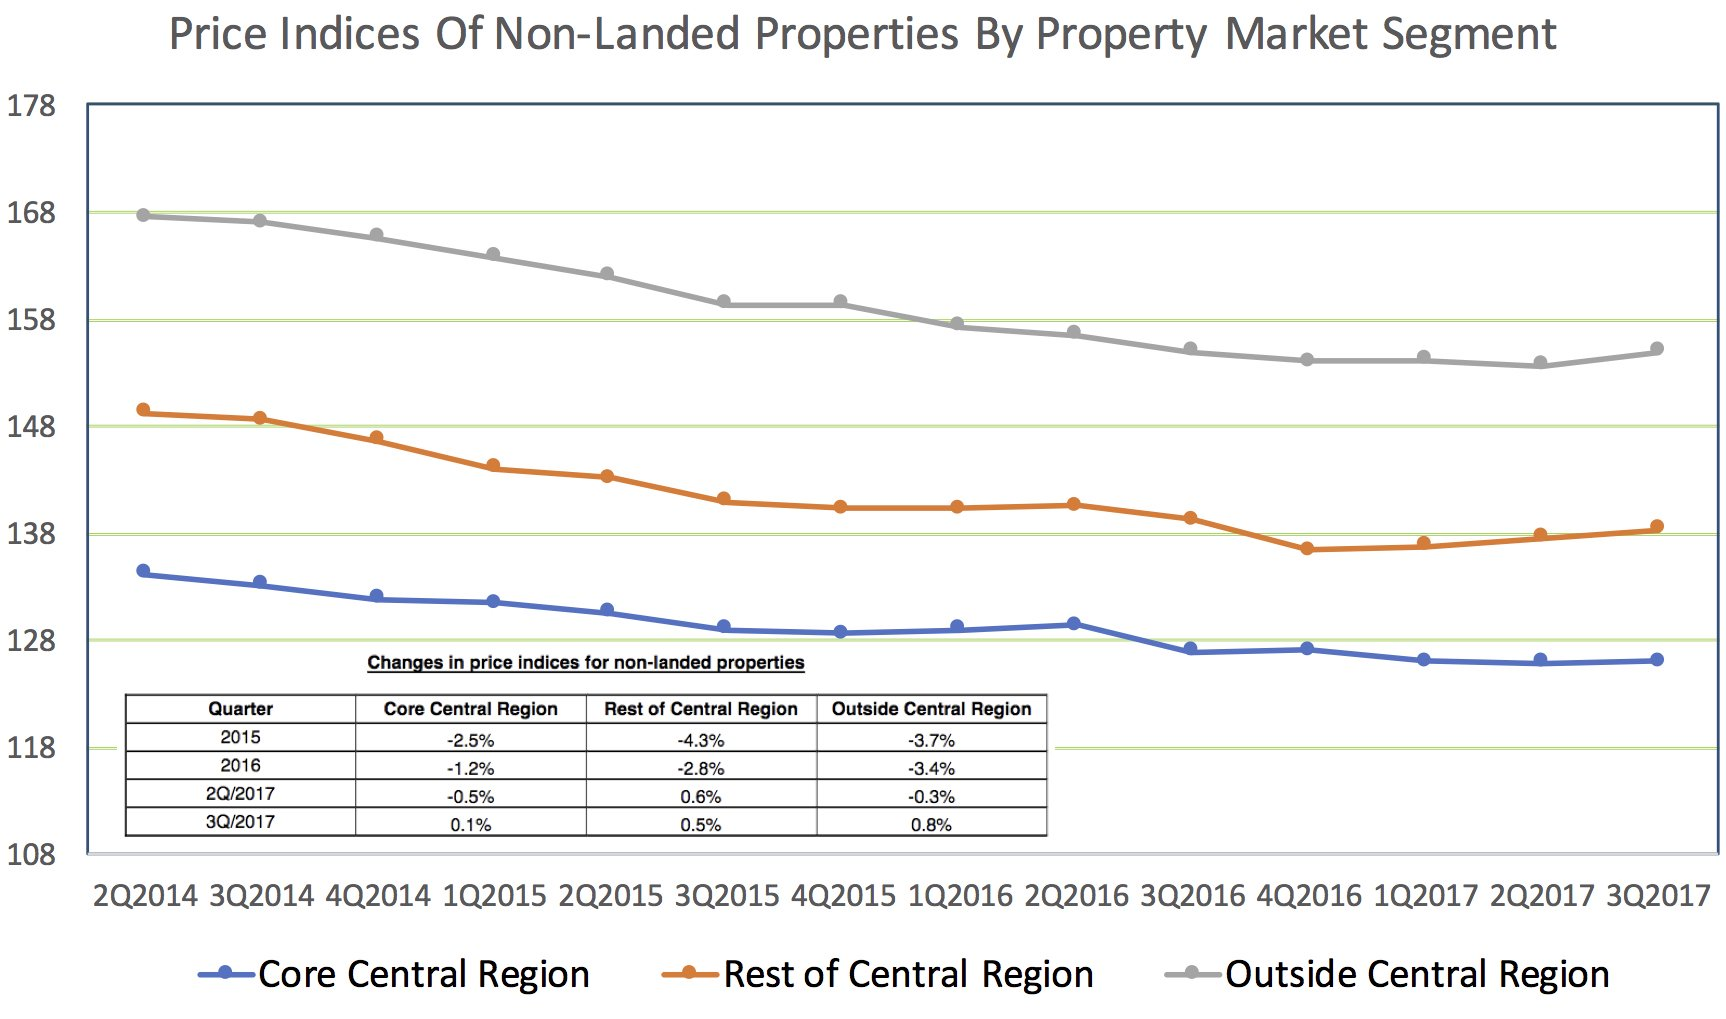 Price Indices Of Non-Landed Properties By Singapore Property Market Segment